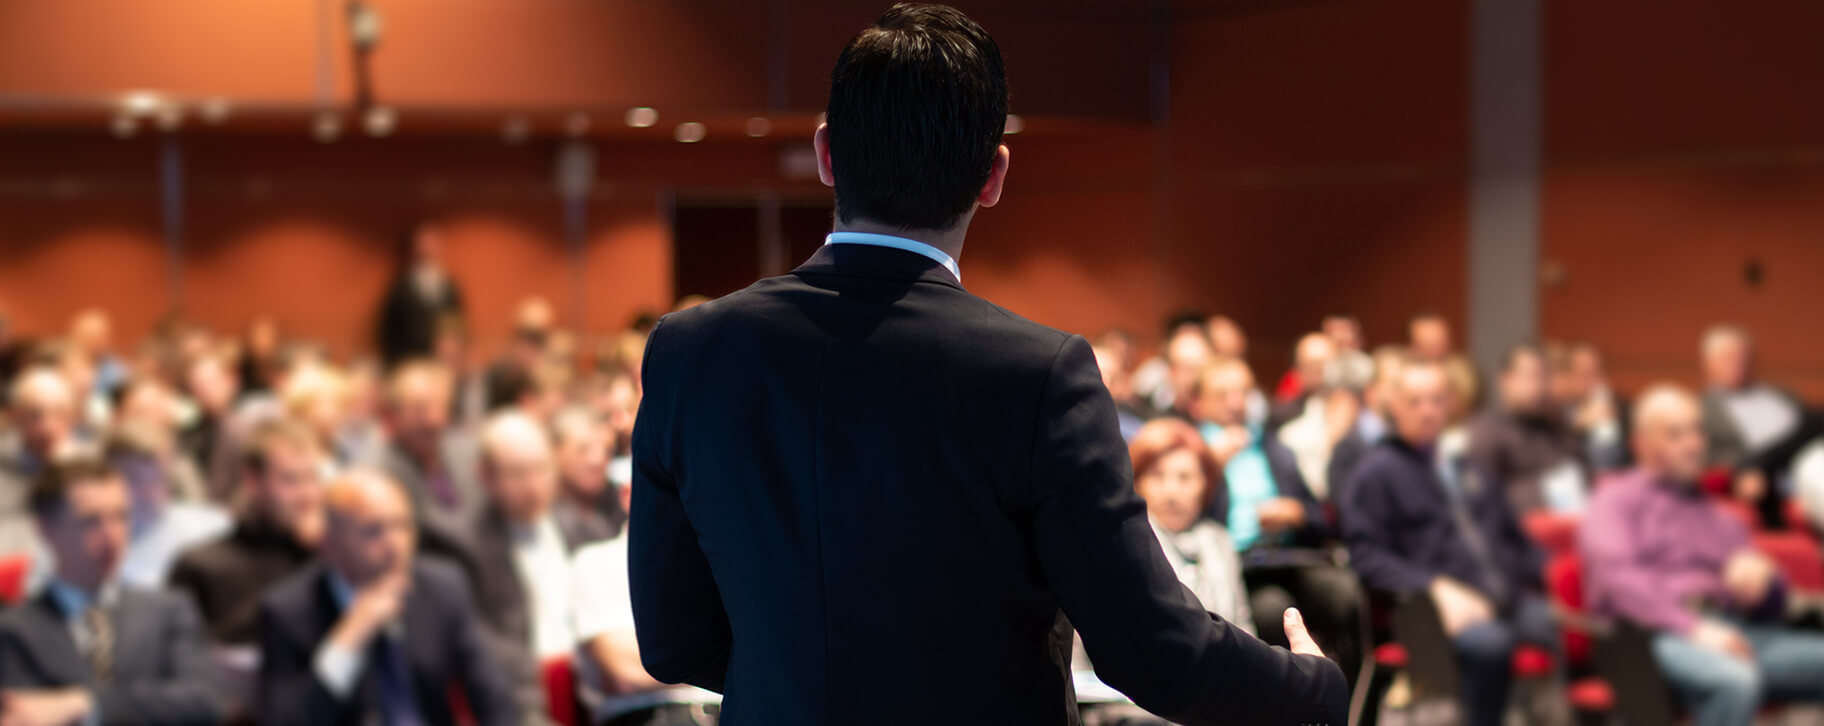 Man speaking in the conference hall